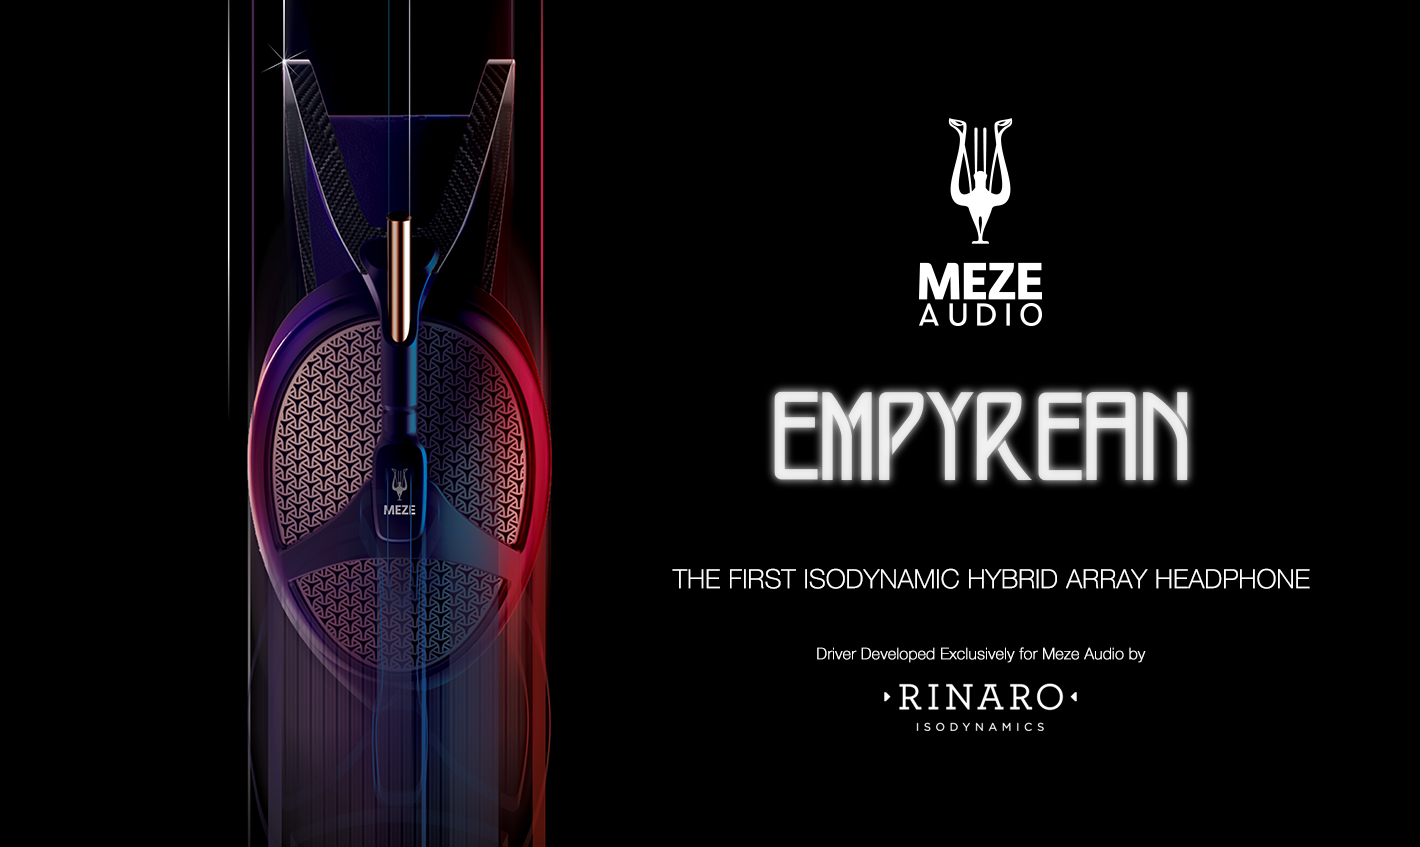 tintucaudio, meze, empyrean